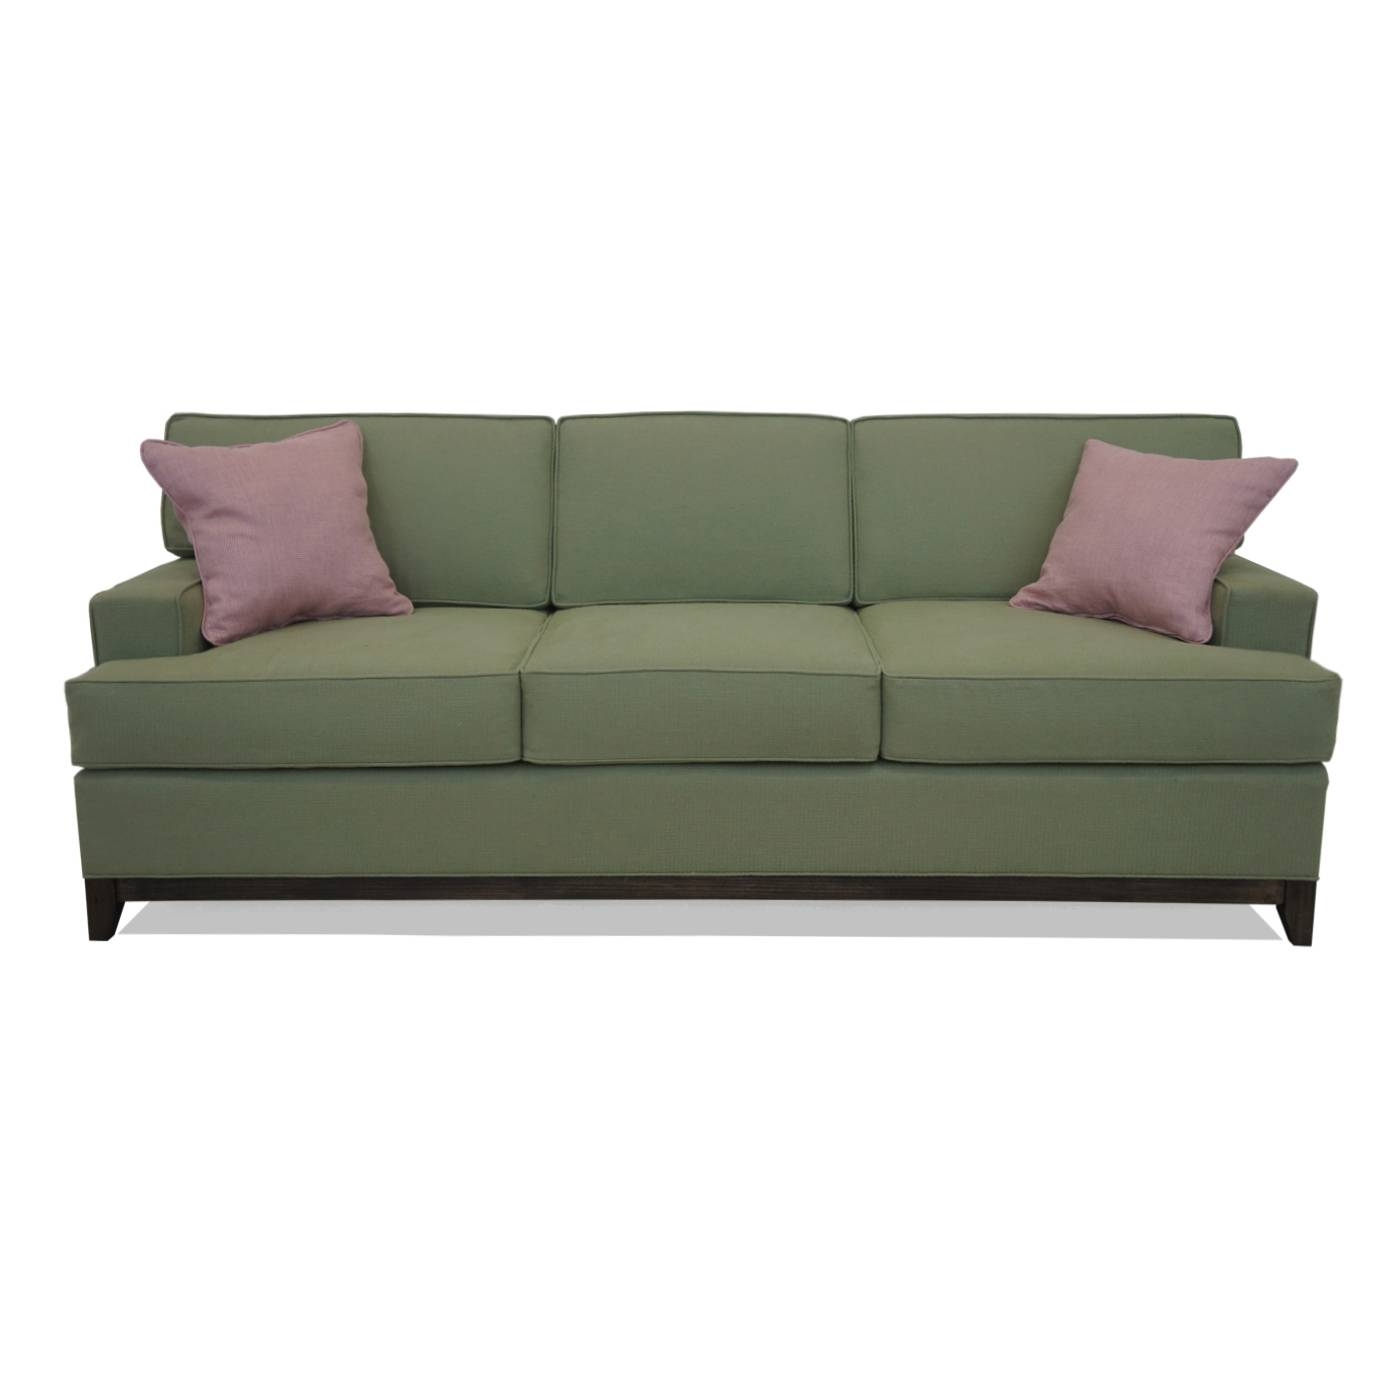 The Best Places To Shop For Eco-Friendly Furniture regarding Eco Friendly Sectional Sofa (Image 29 of 30)